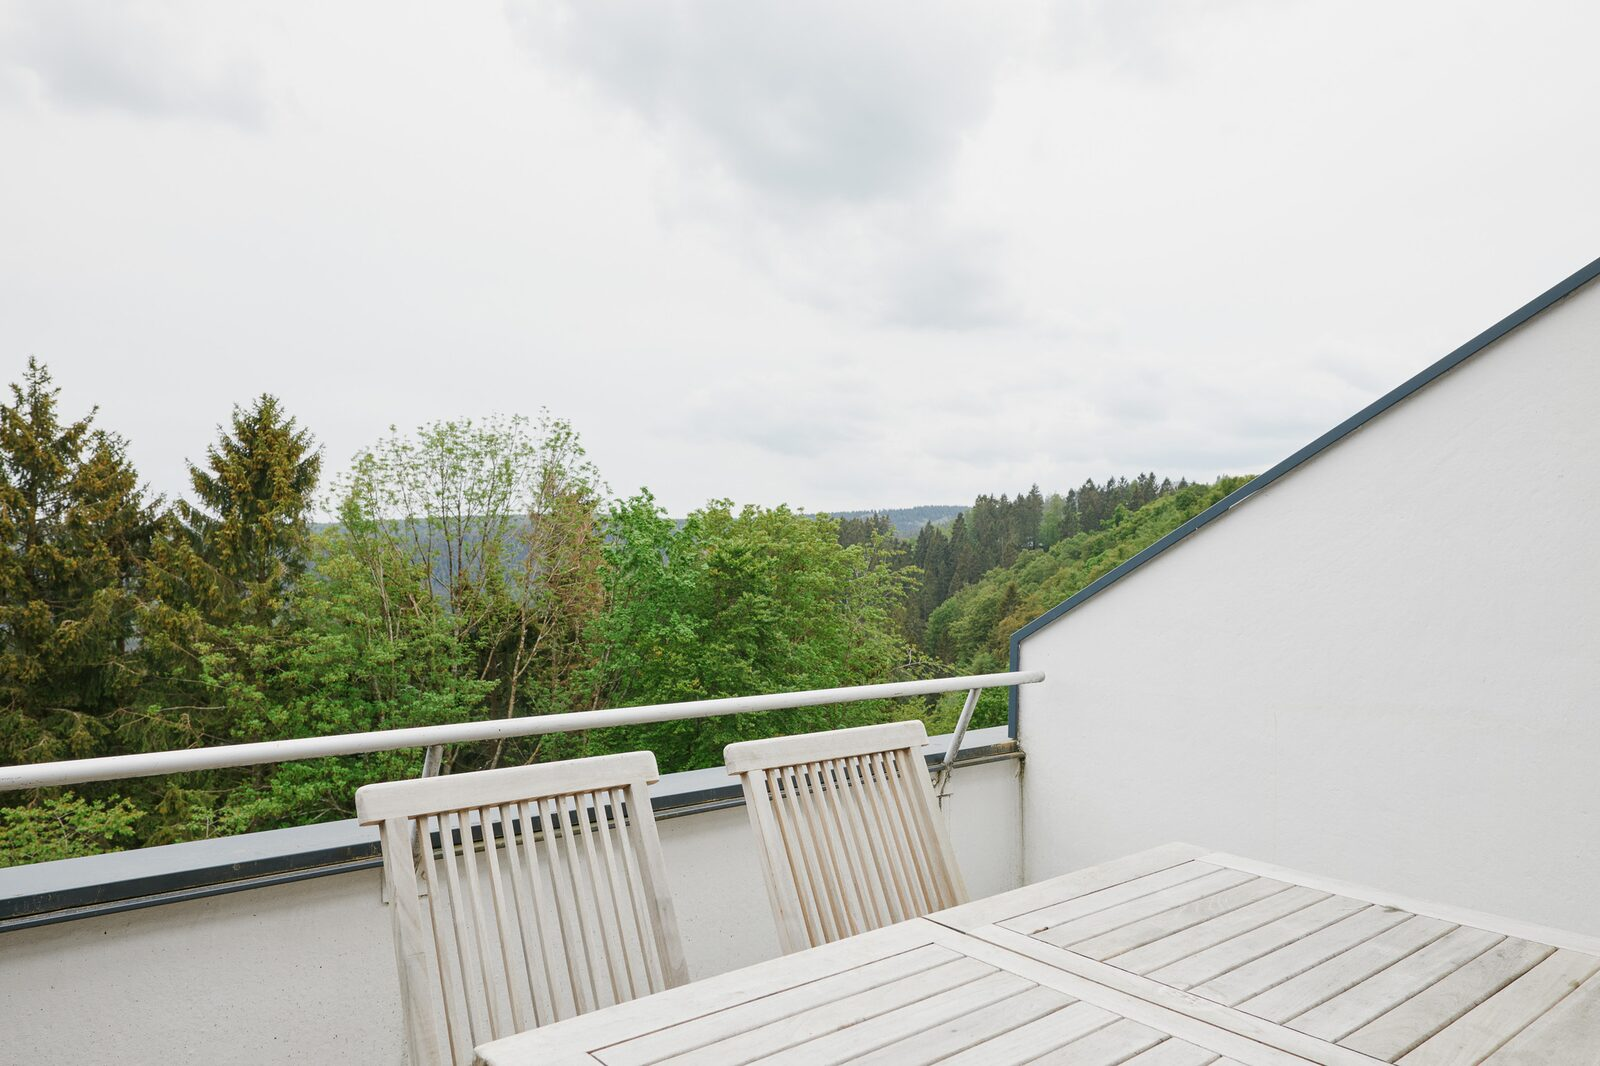 Appartement - Am Waltenberg 70-MS | Winterberg 'Tremonia'